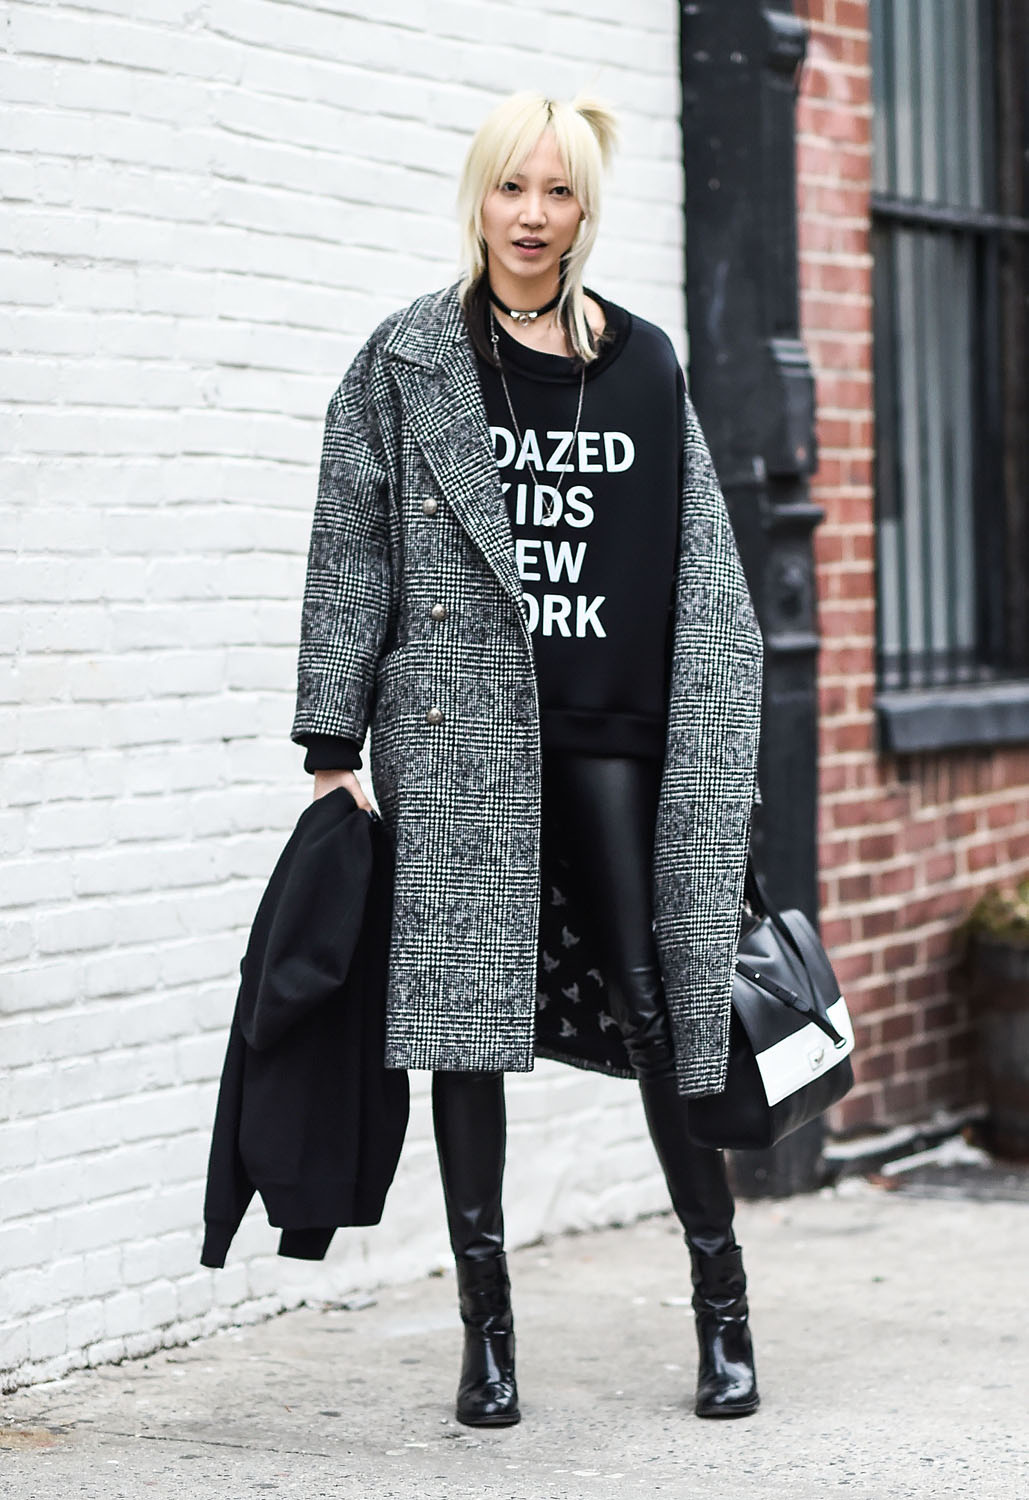 NEW YORK, NY - FEBRUARY 17: Soo Joo Park is seen outside the DKNY show wearing a DKNY sweater during New York Fashion Week: Women's Fall/Winter 2016 on February 17, 2016 in New York City. (Photo by Daniel Zuchnik/Getty Images)